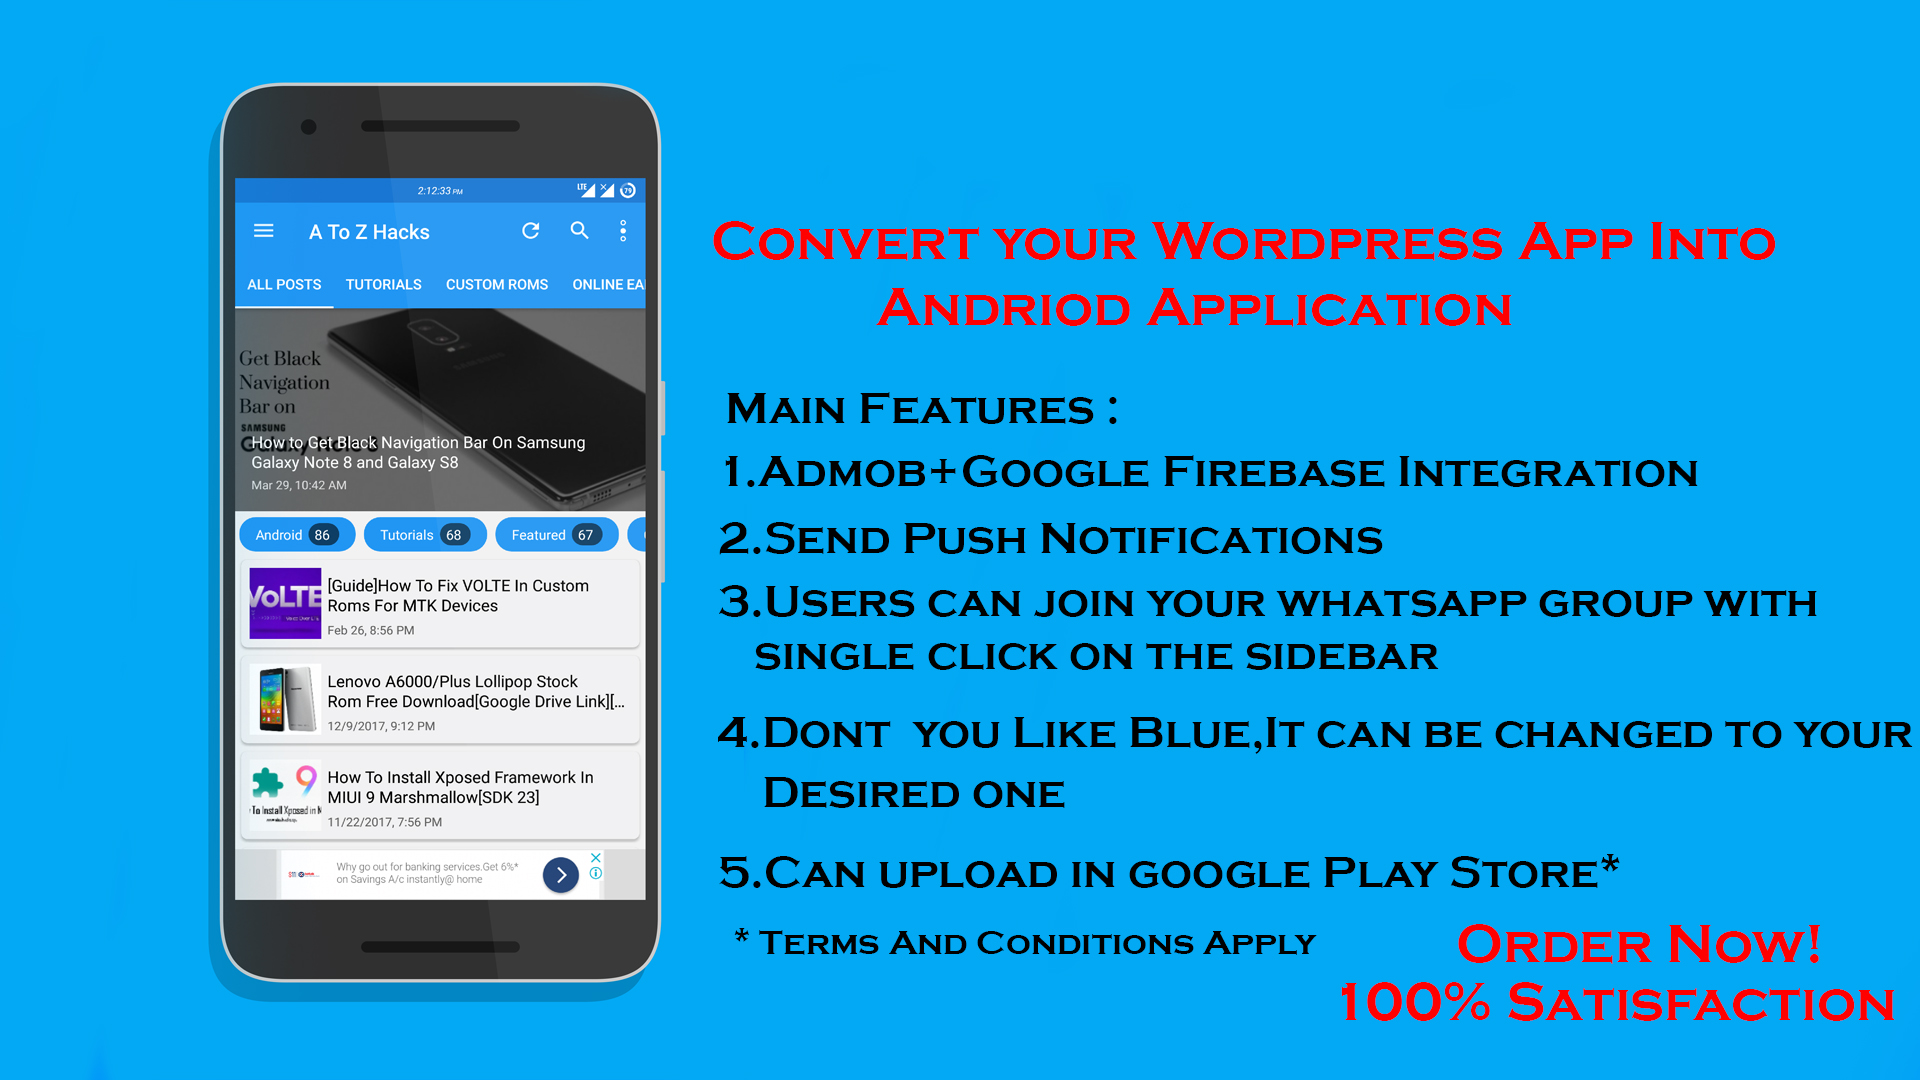 I Can Create A Android Application For Your WordPress Blog/Site for $10